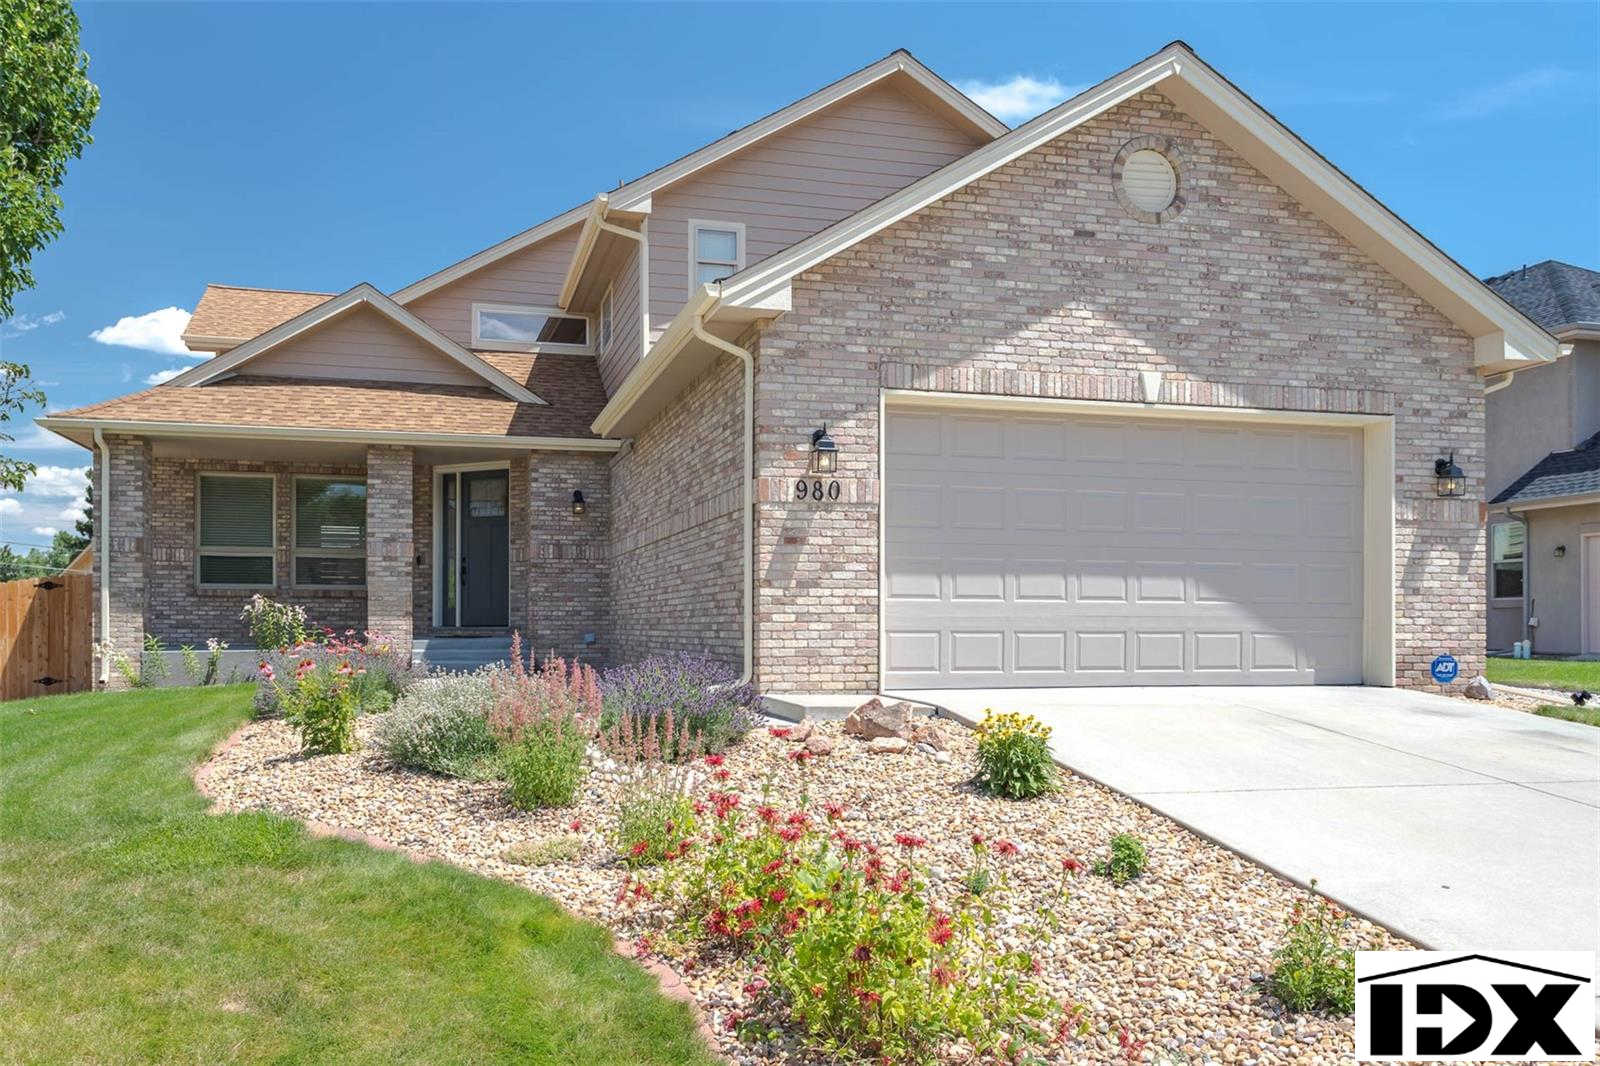 980 Wright Court, Golden, CO 80401 now has a new price of $690,000!